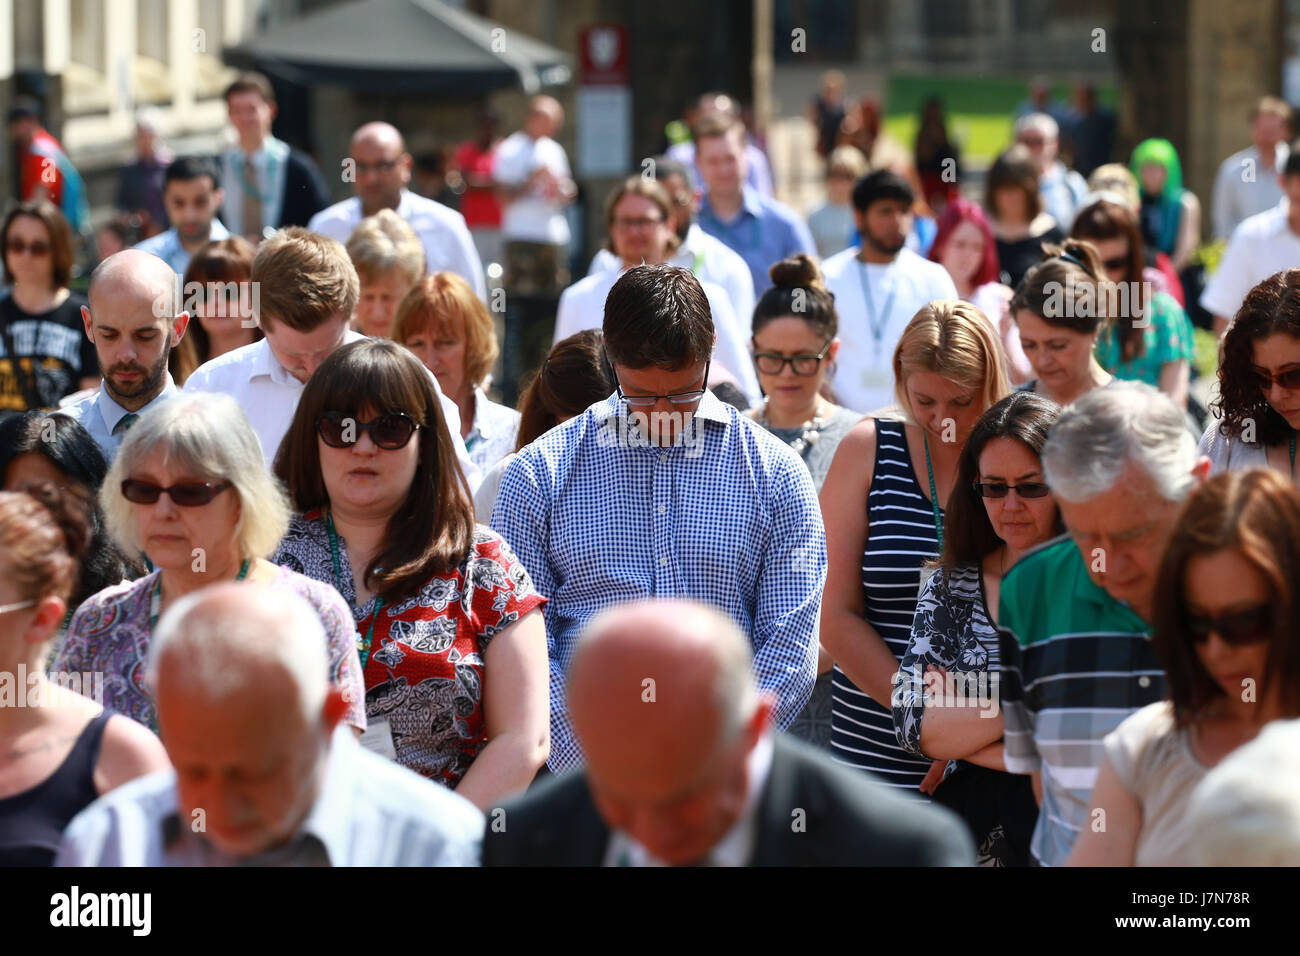 Peterborough, UK. 25th May, 2017. Minutes silence for Manchester bombing victims. A minutes silence is observed - Stock Image